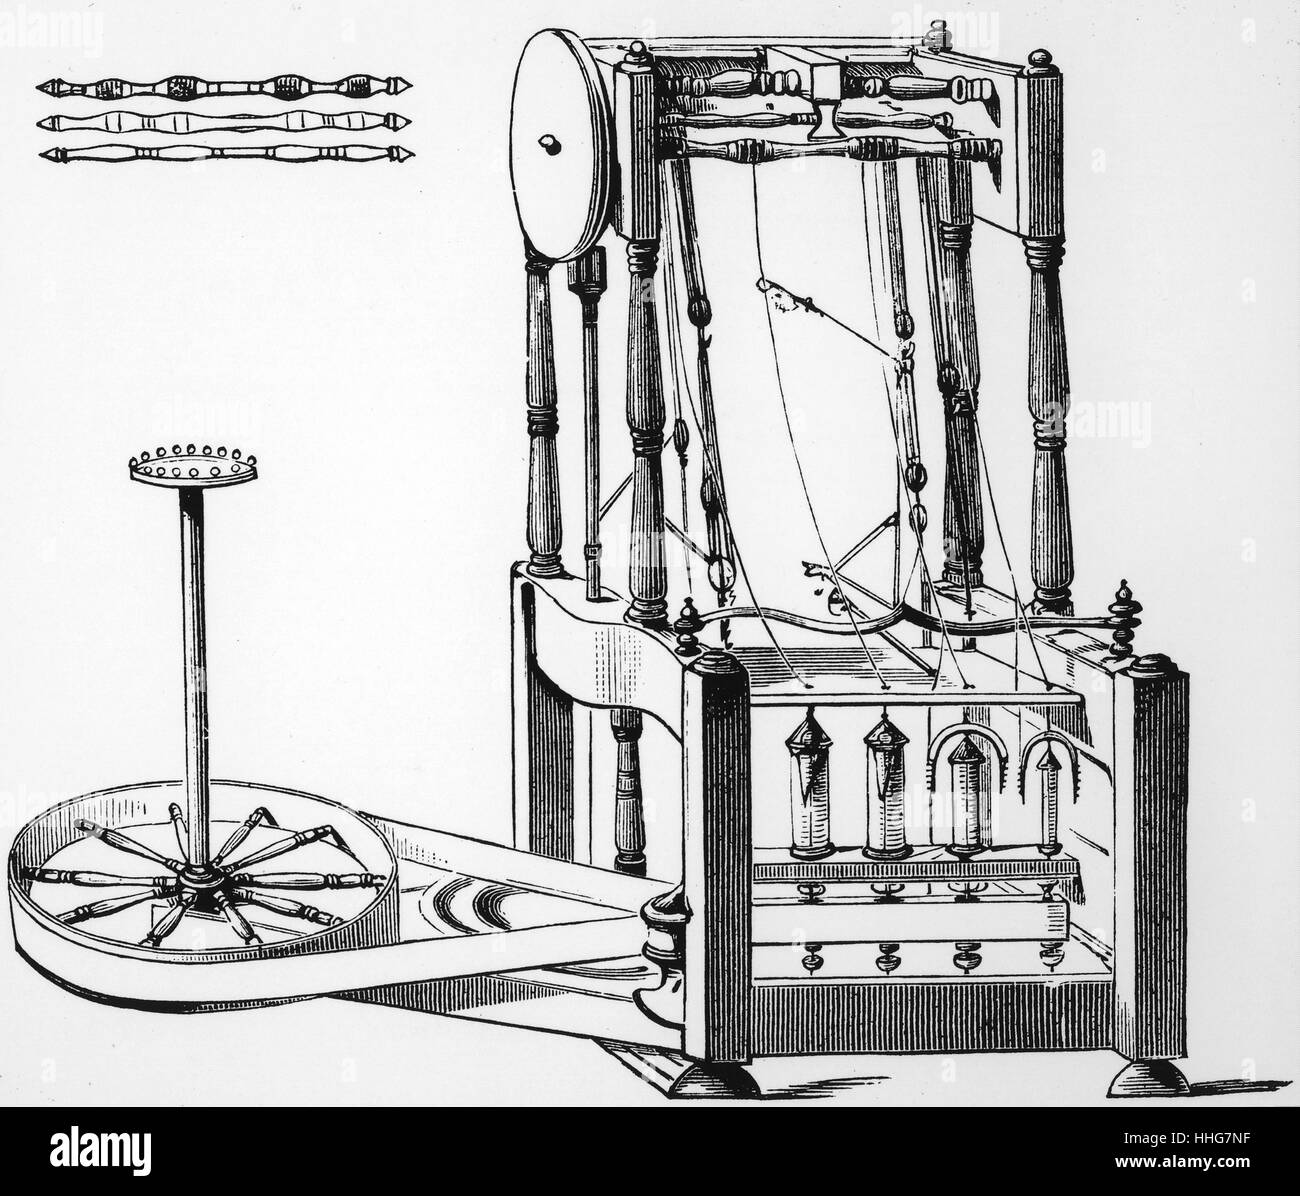 hight resolution of illustration depicting arkwright s water frame spinning machine